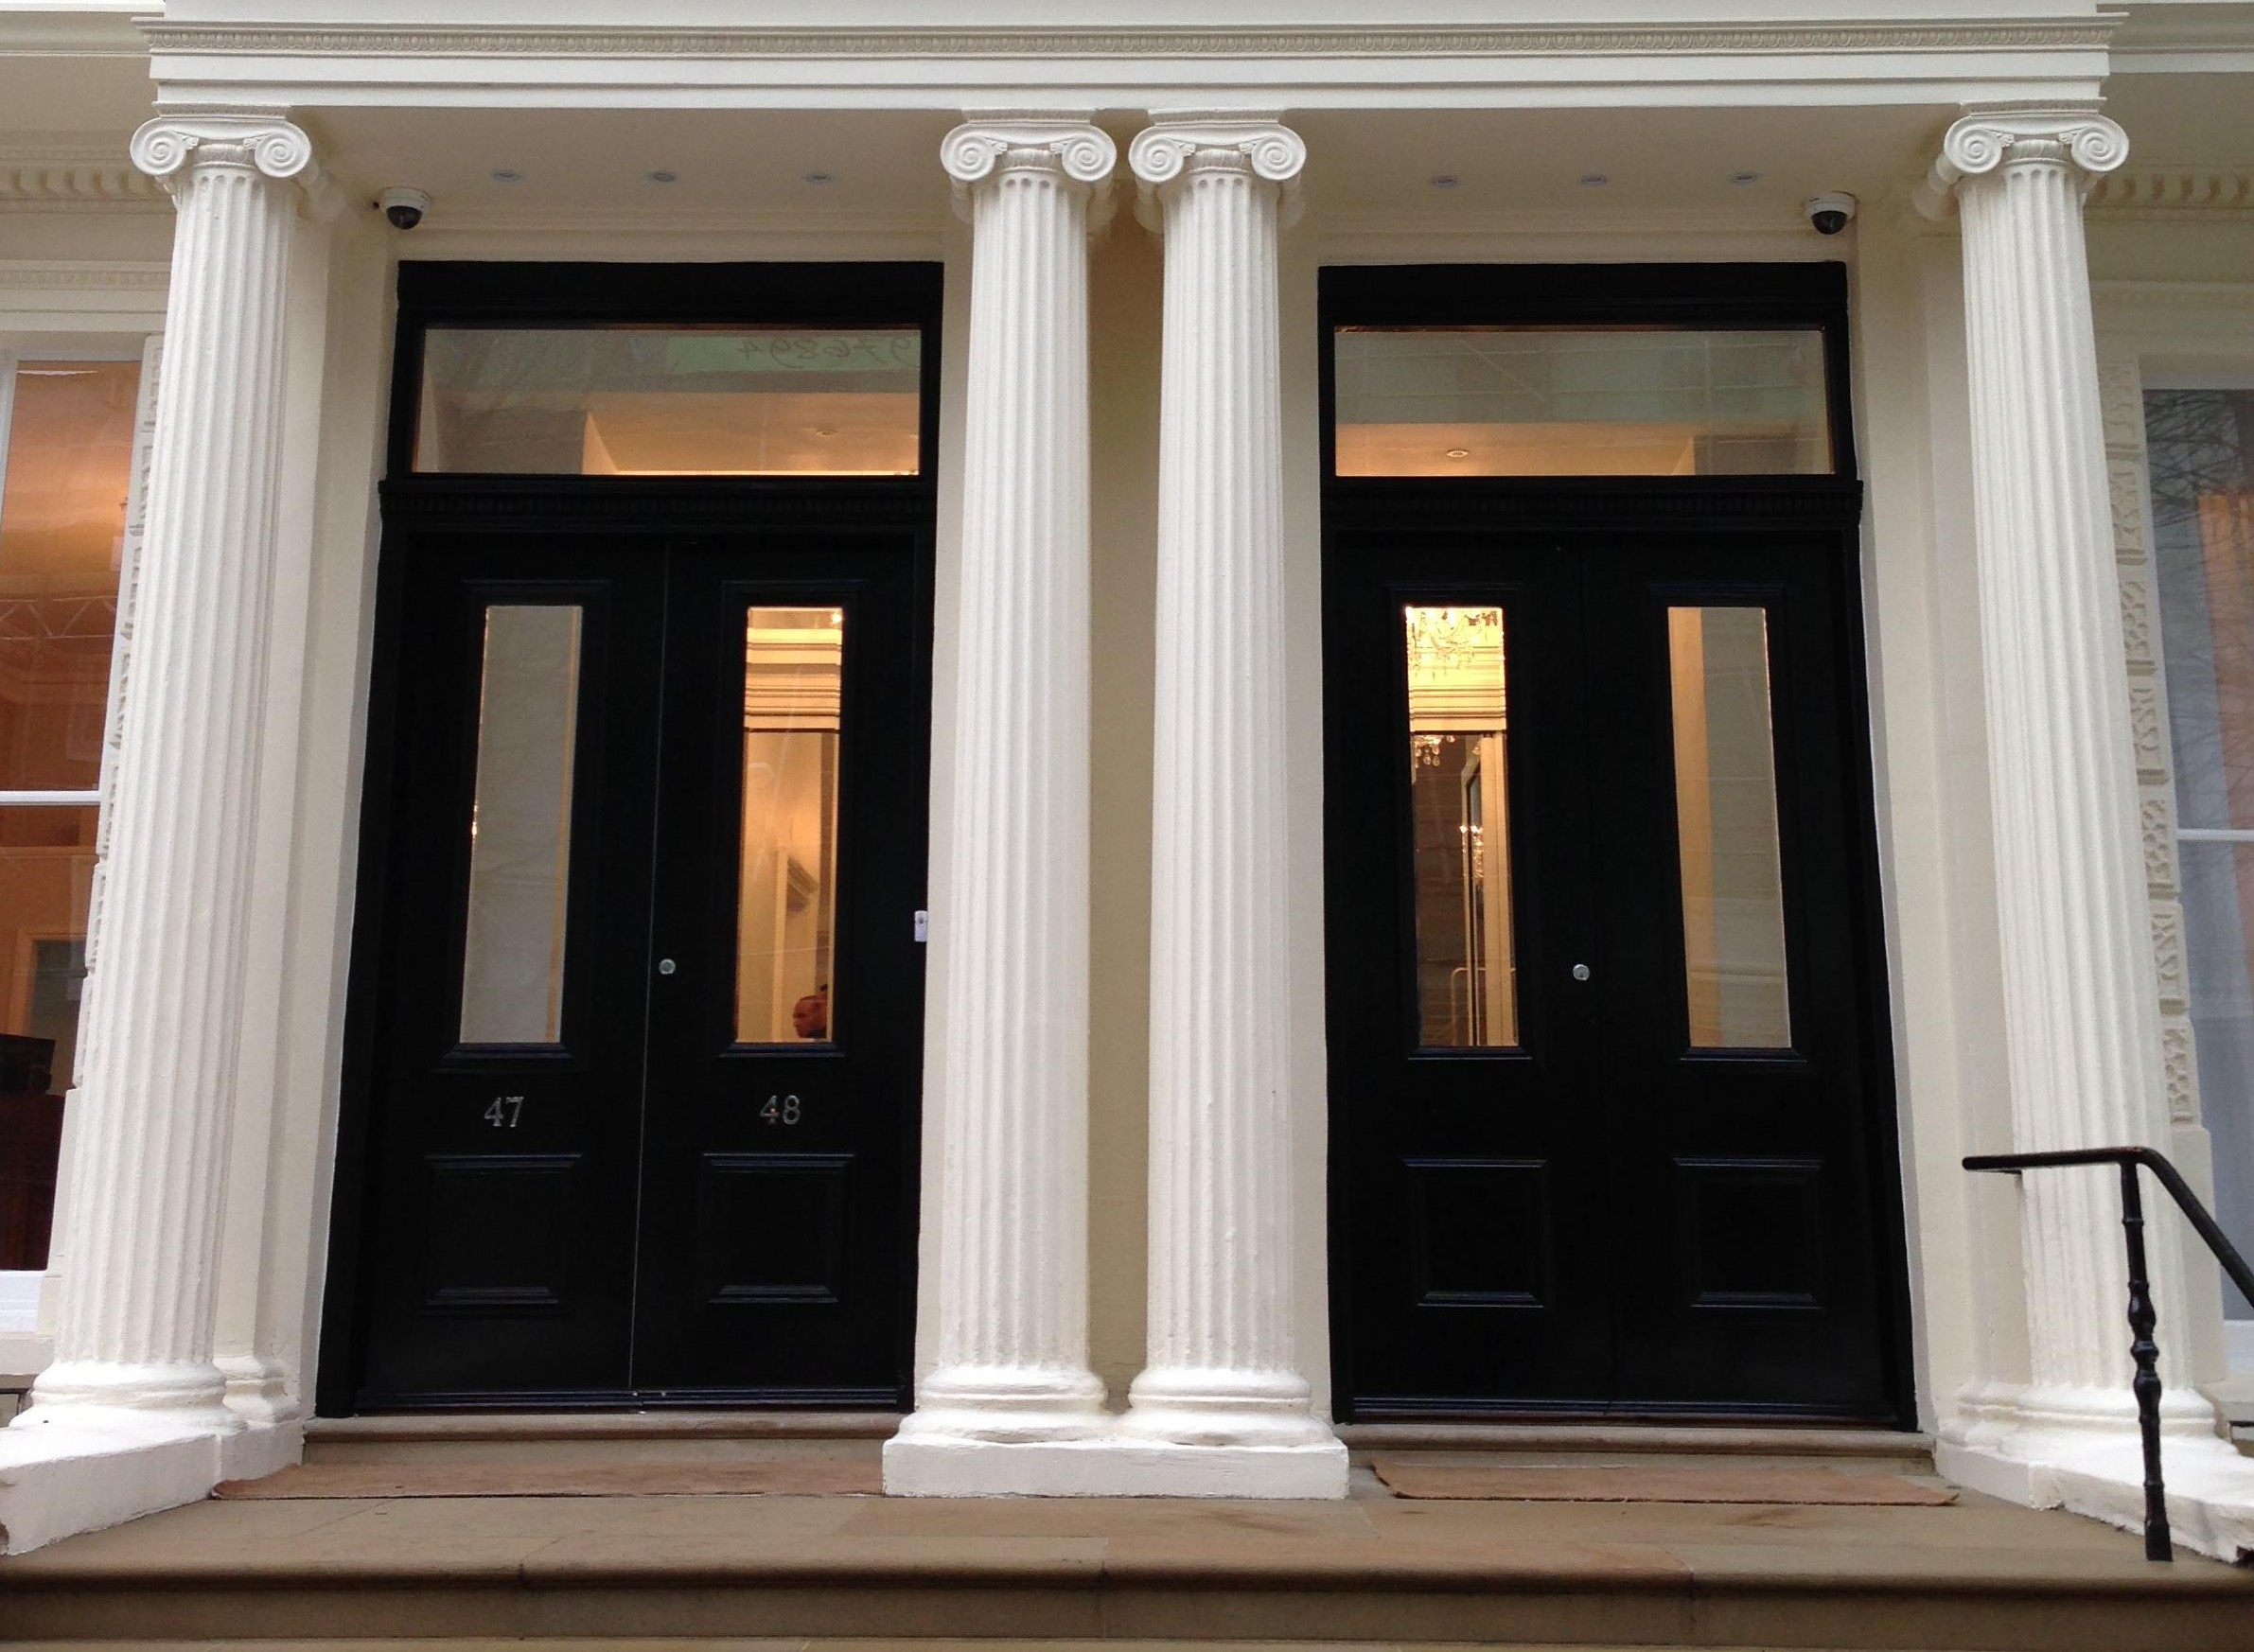 Columns/Pilasters